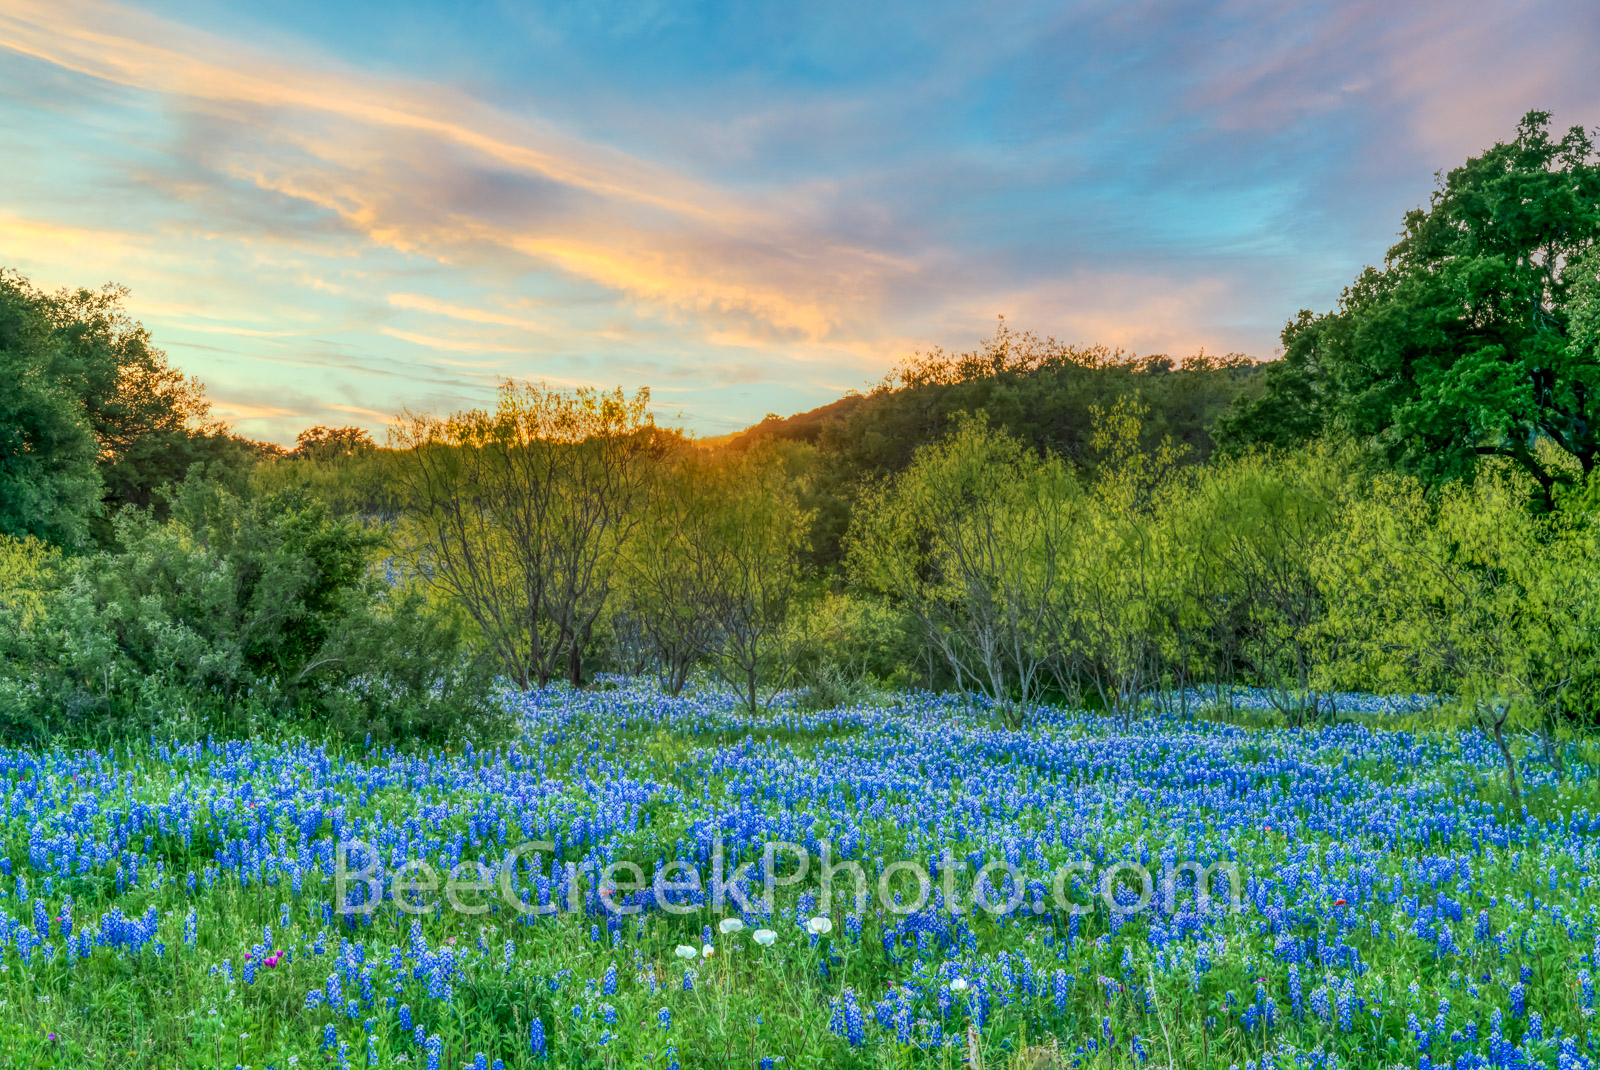 texas bluebonnets, texas wildflowers, texas hill country, hill country, poppies, texas landscape, pictures of bluebonnets, landscape, texas, dusk, pictures of bluebonnets, images of bluebonnets, wildf, photo